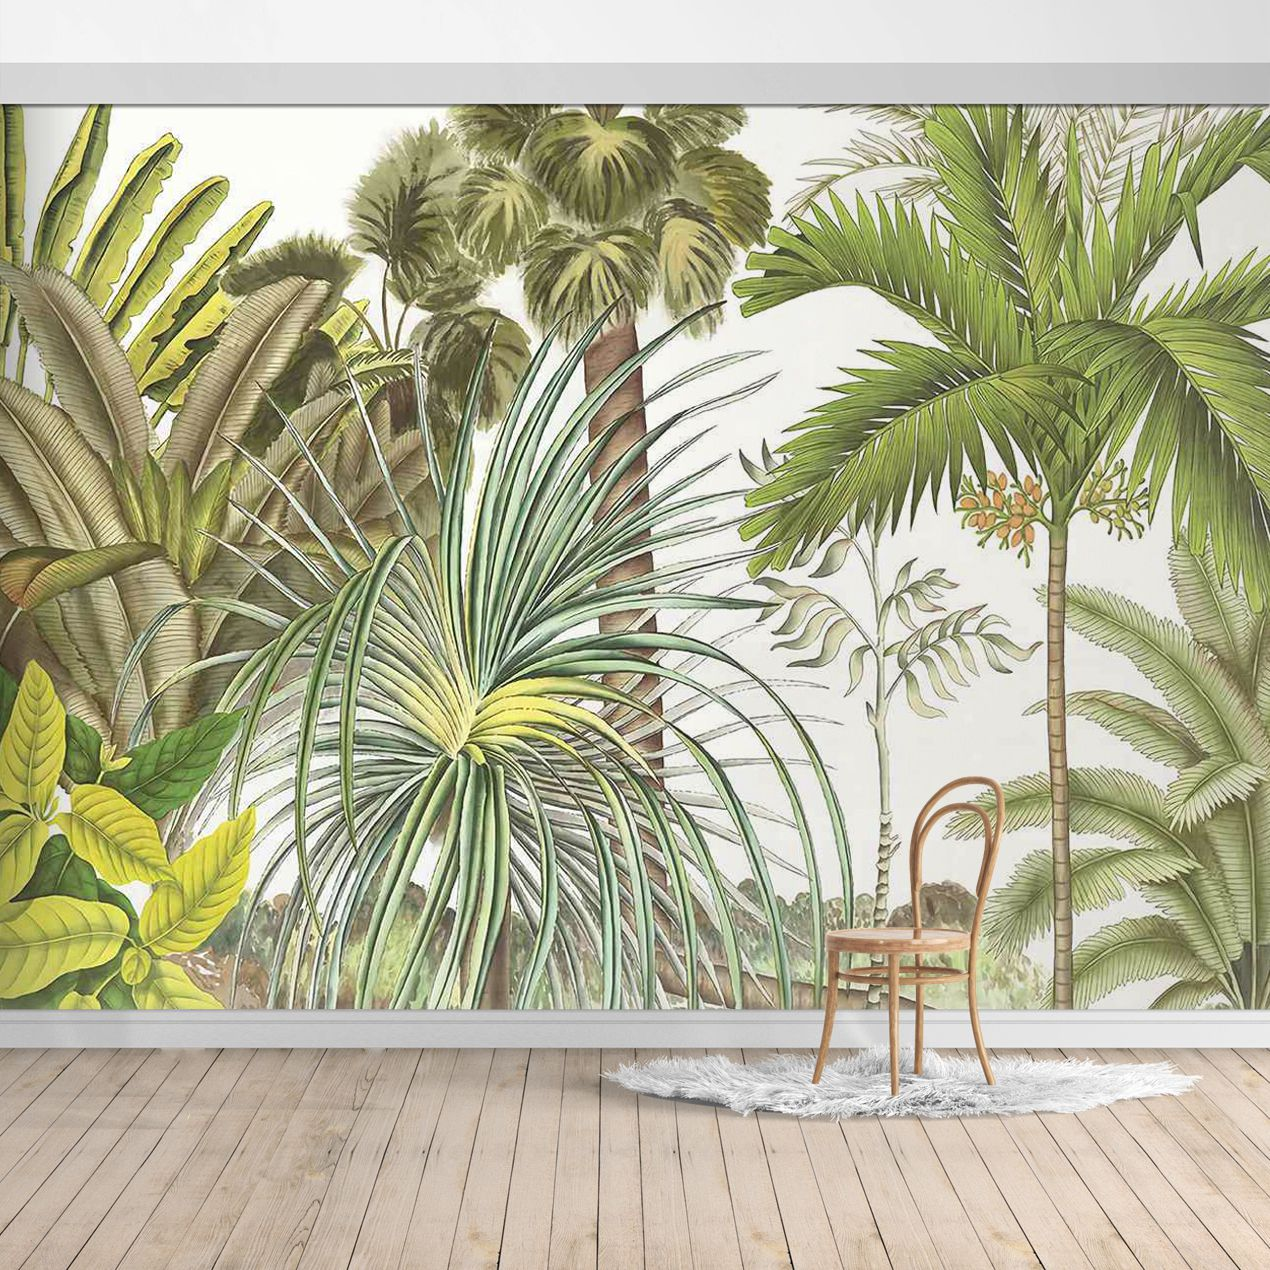 PW19052400011X Hawaiian style Jungle design Mural for bedroom or dinning room by SJK